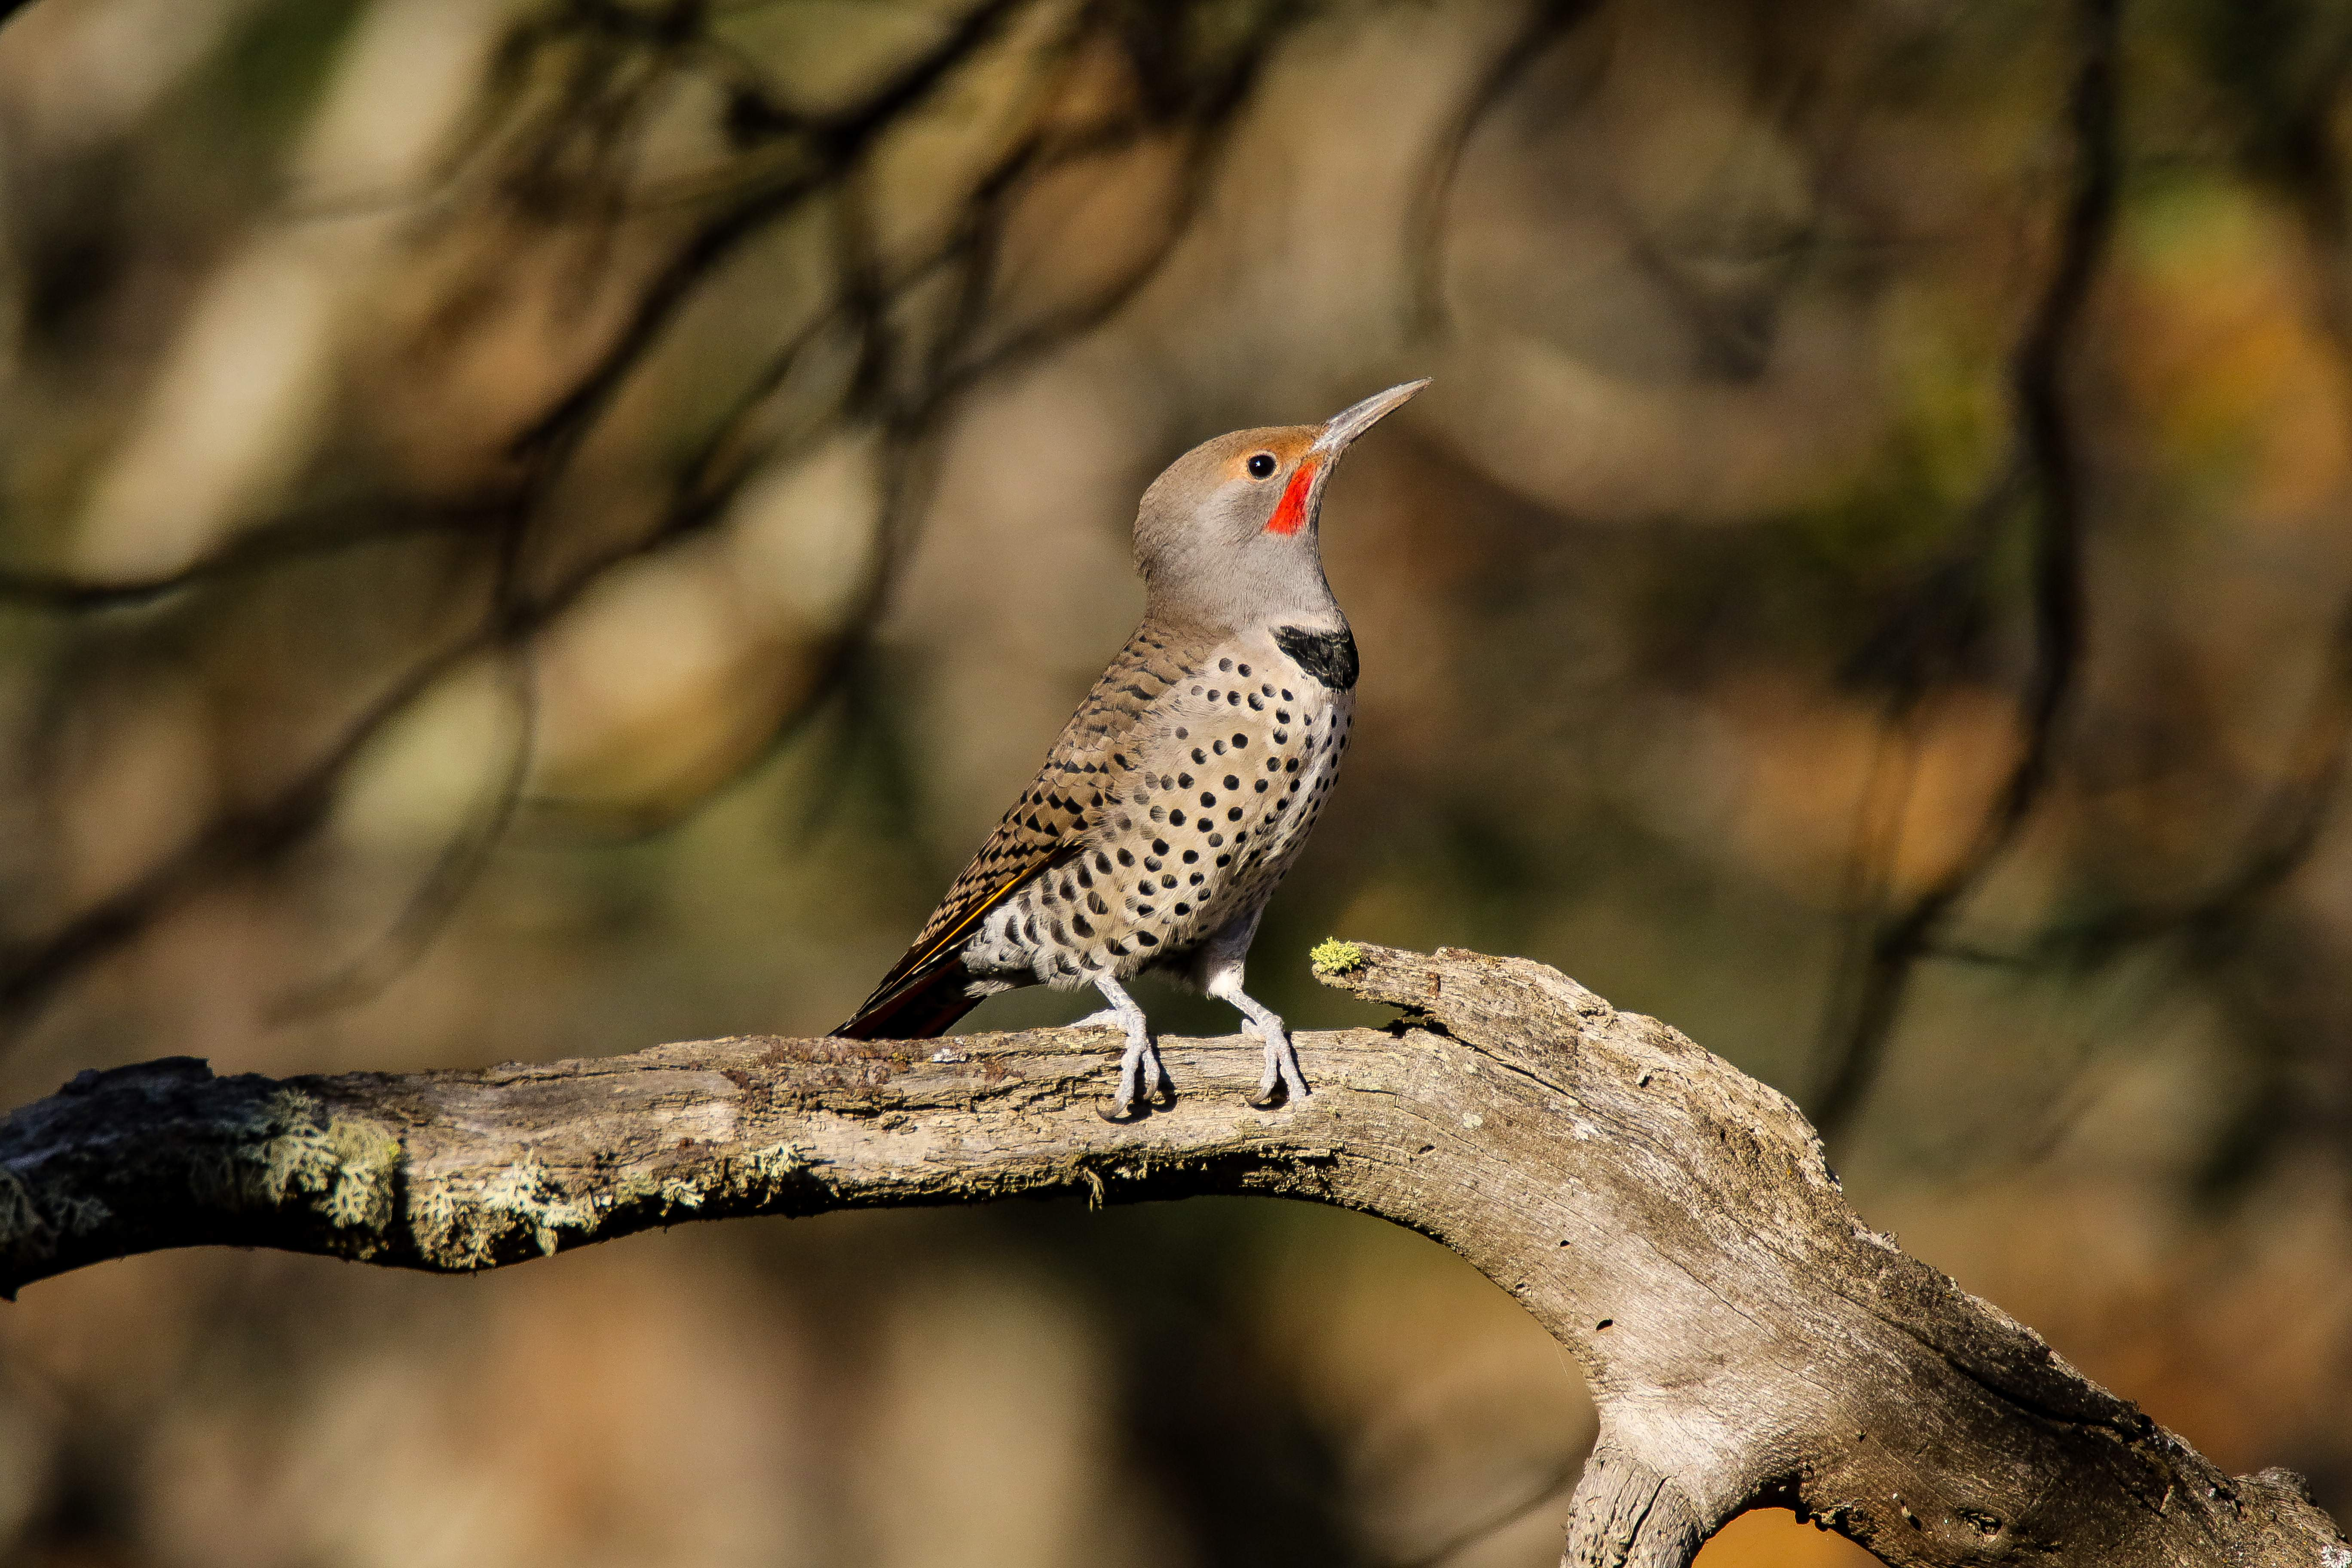 Northern flicker along Emigrant Creek - Photo by Mark Heatherington